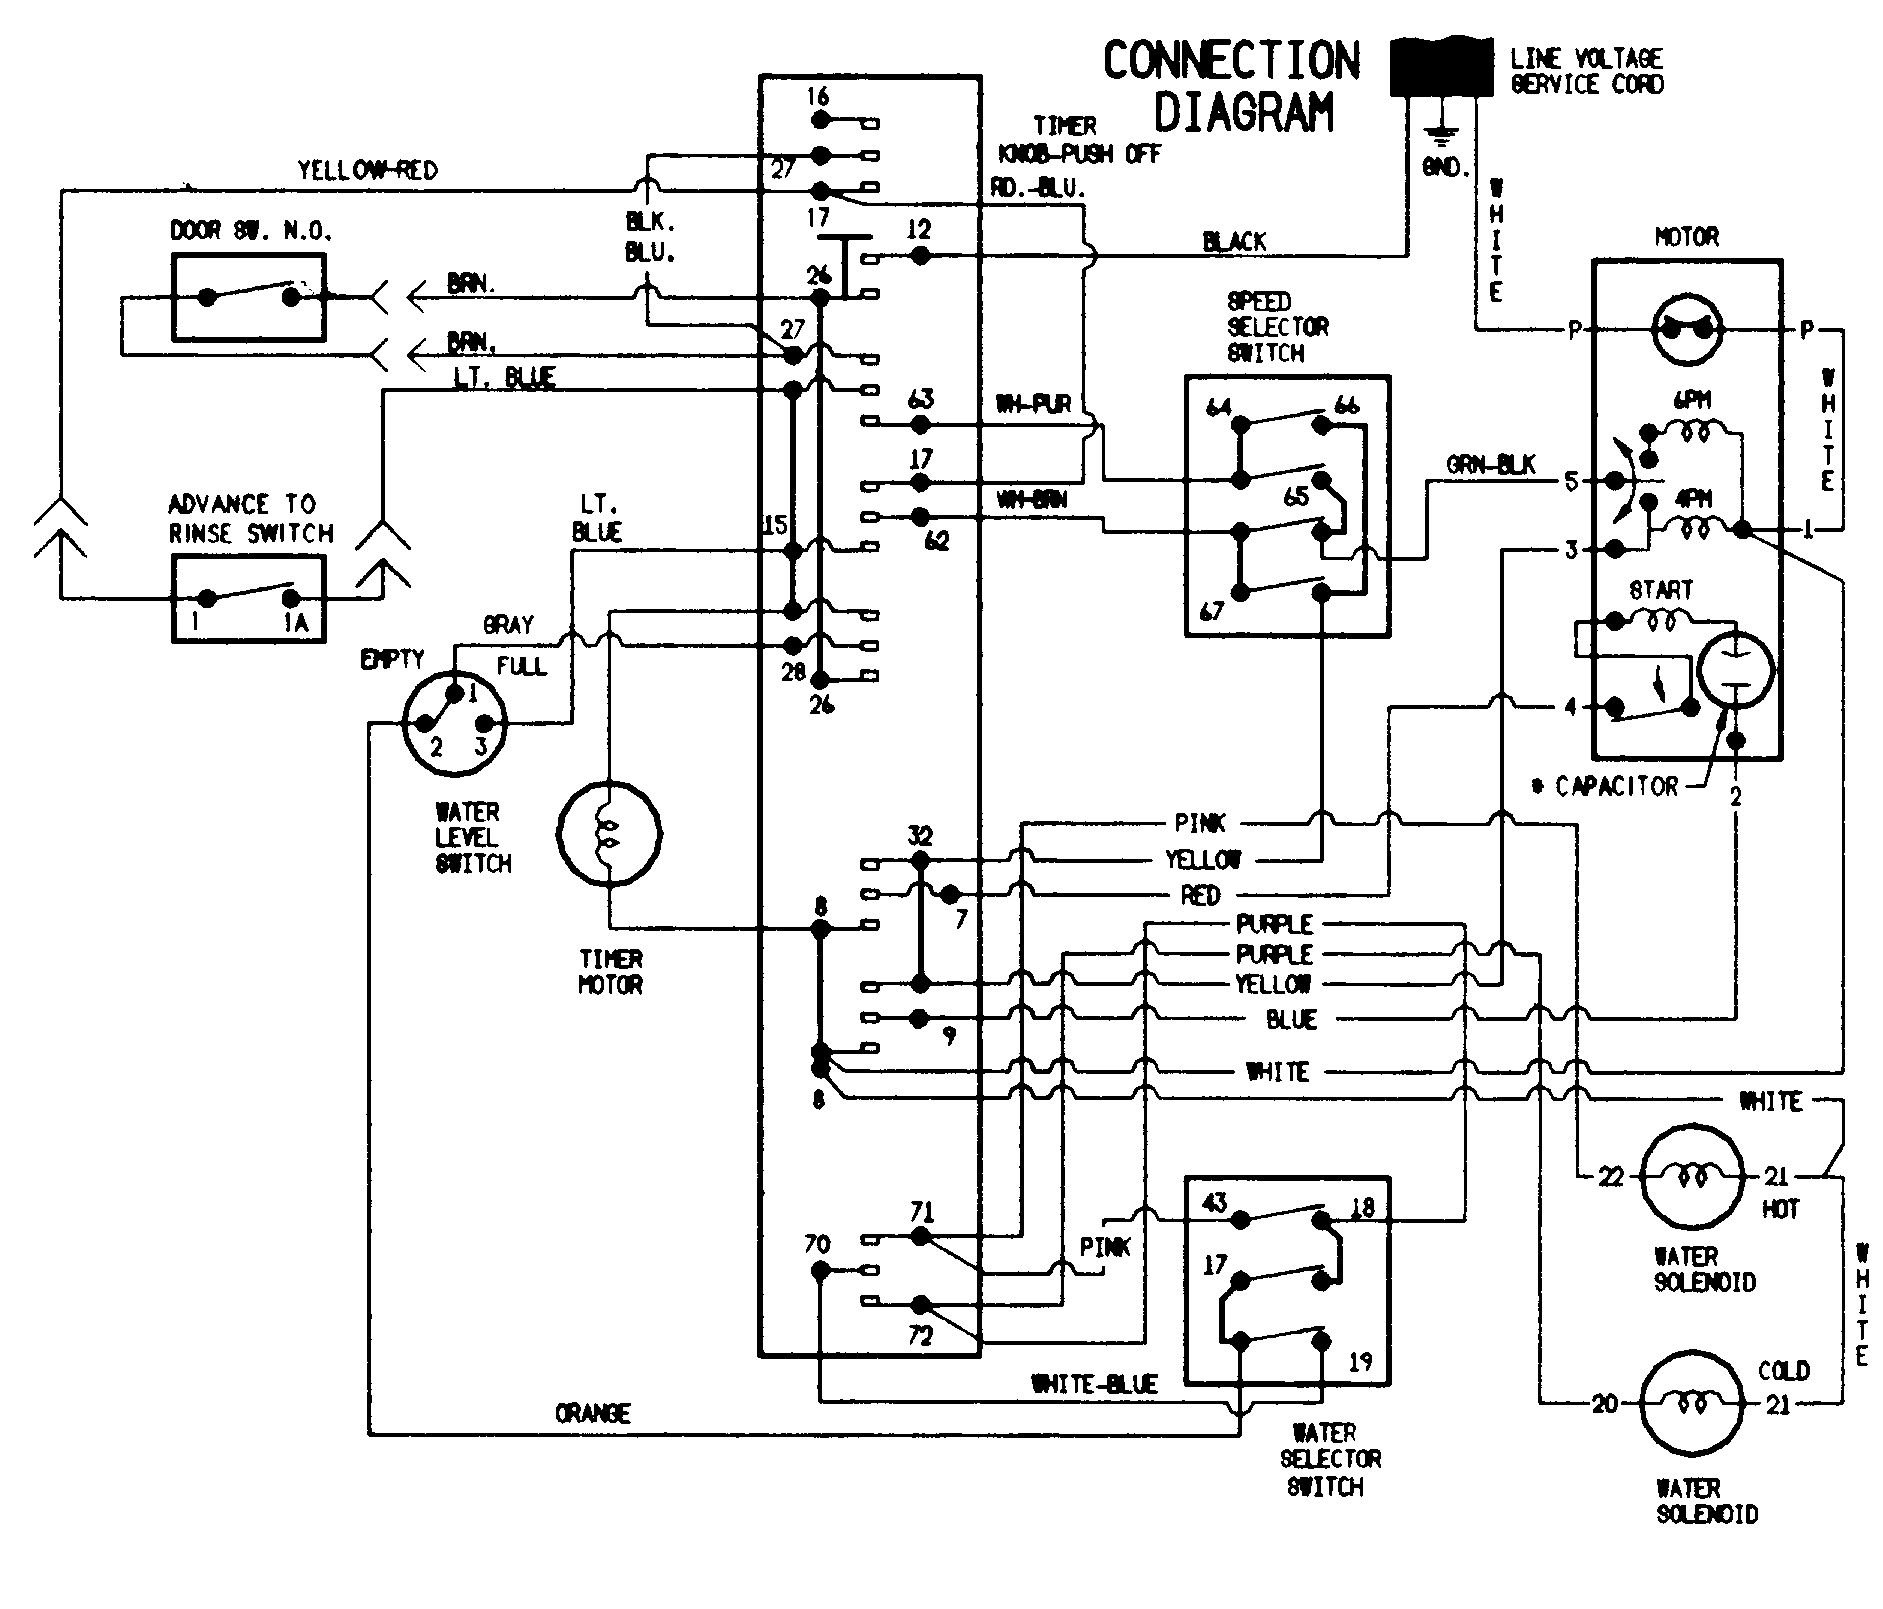 lg tromm wiring diagram online wiring diagram Elite Screen Wiring Diagram lg tromm wiring diagram blog diagram schema lg tromm wiring diagram lg tromm wiring diagram